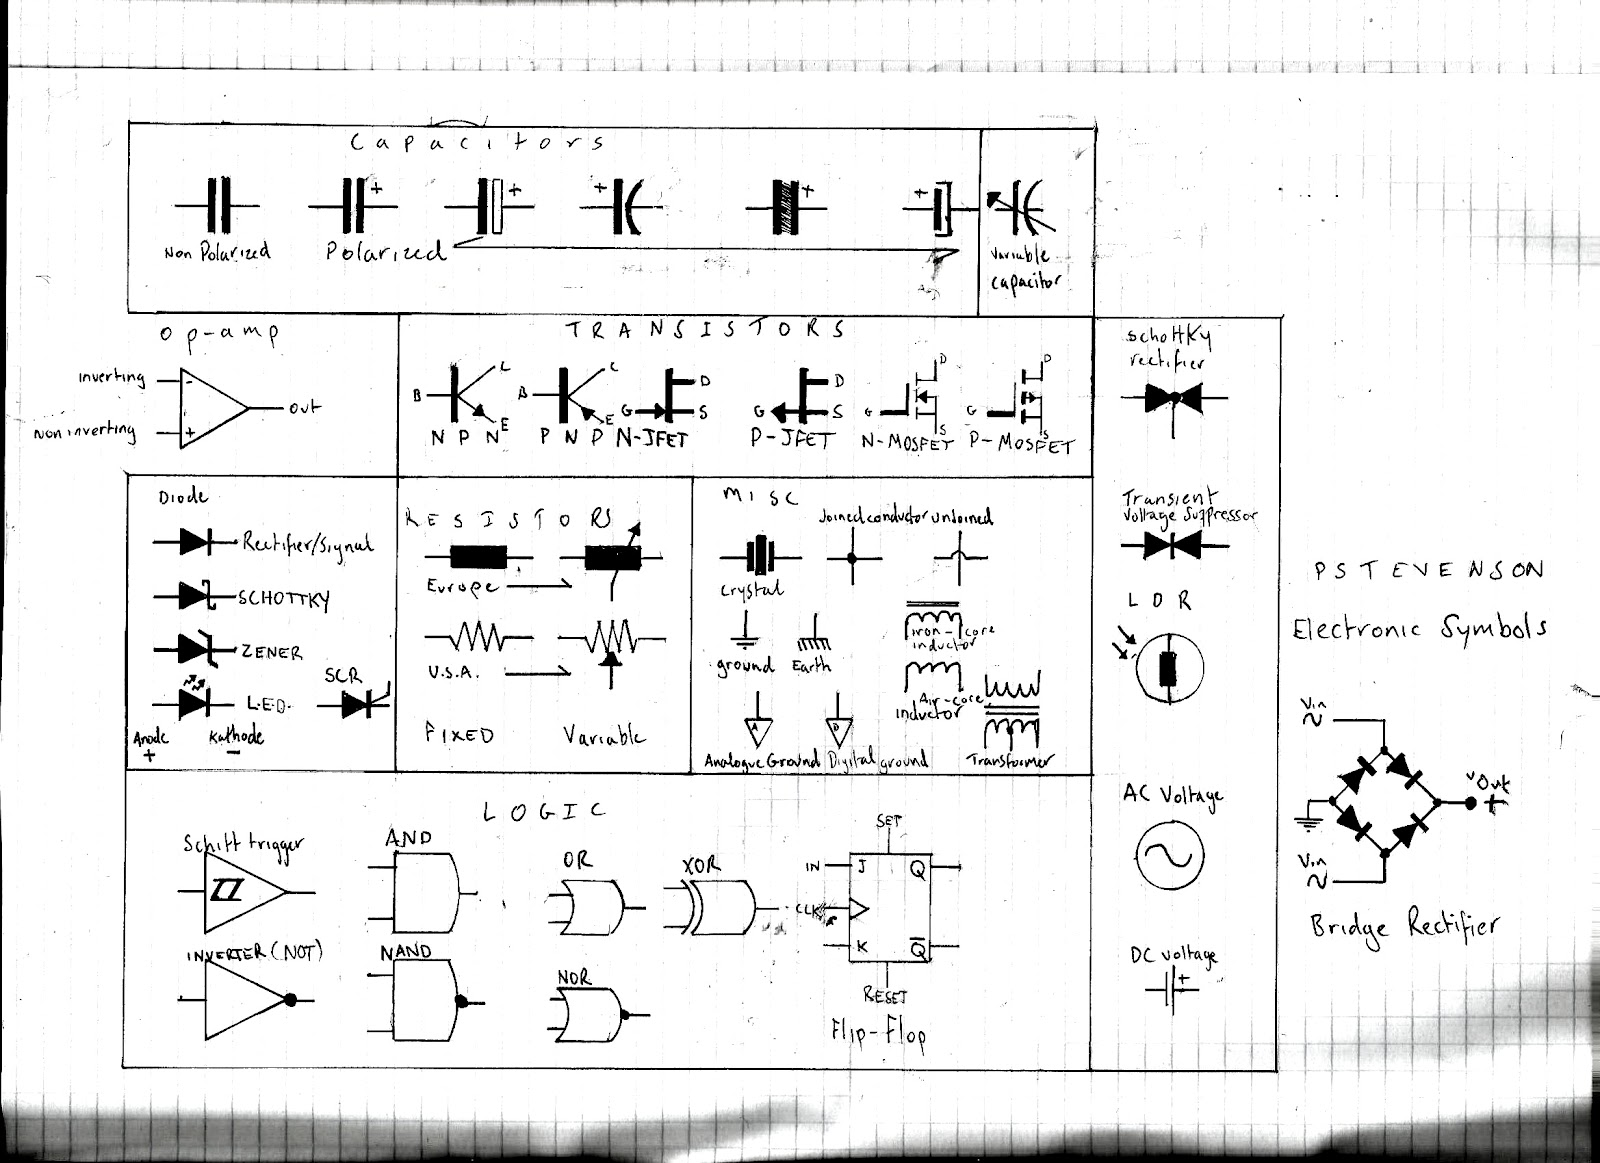 Paul In The Lab: Electronic Symbols